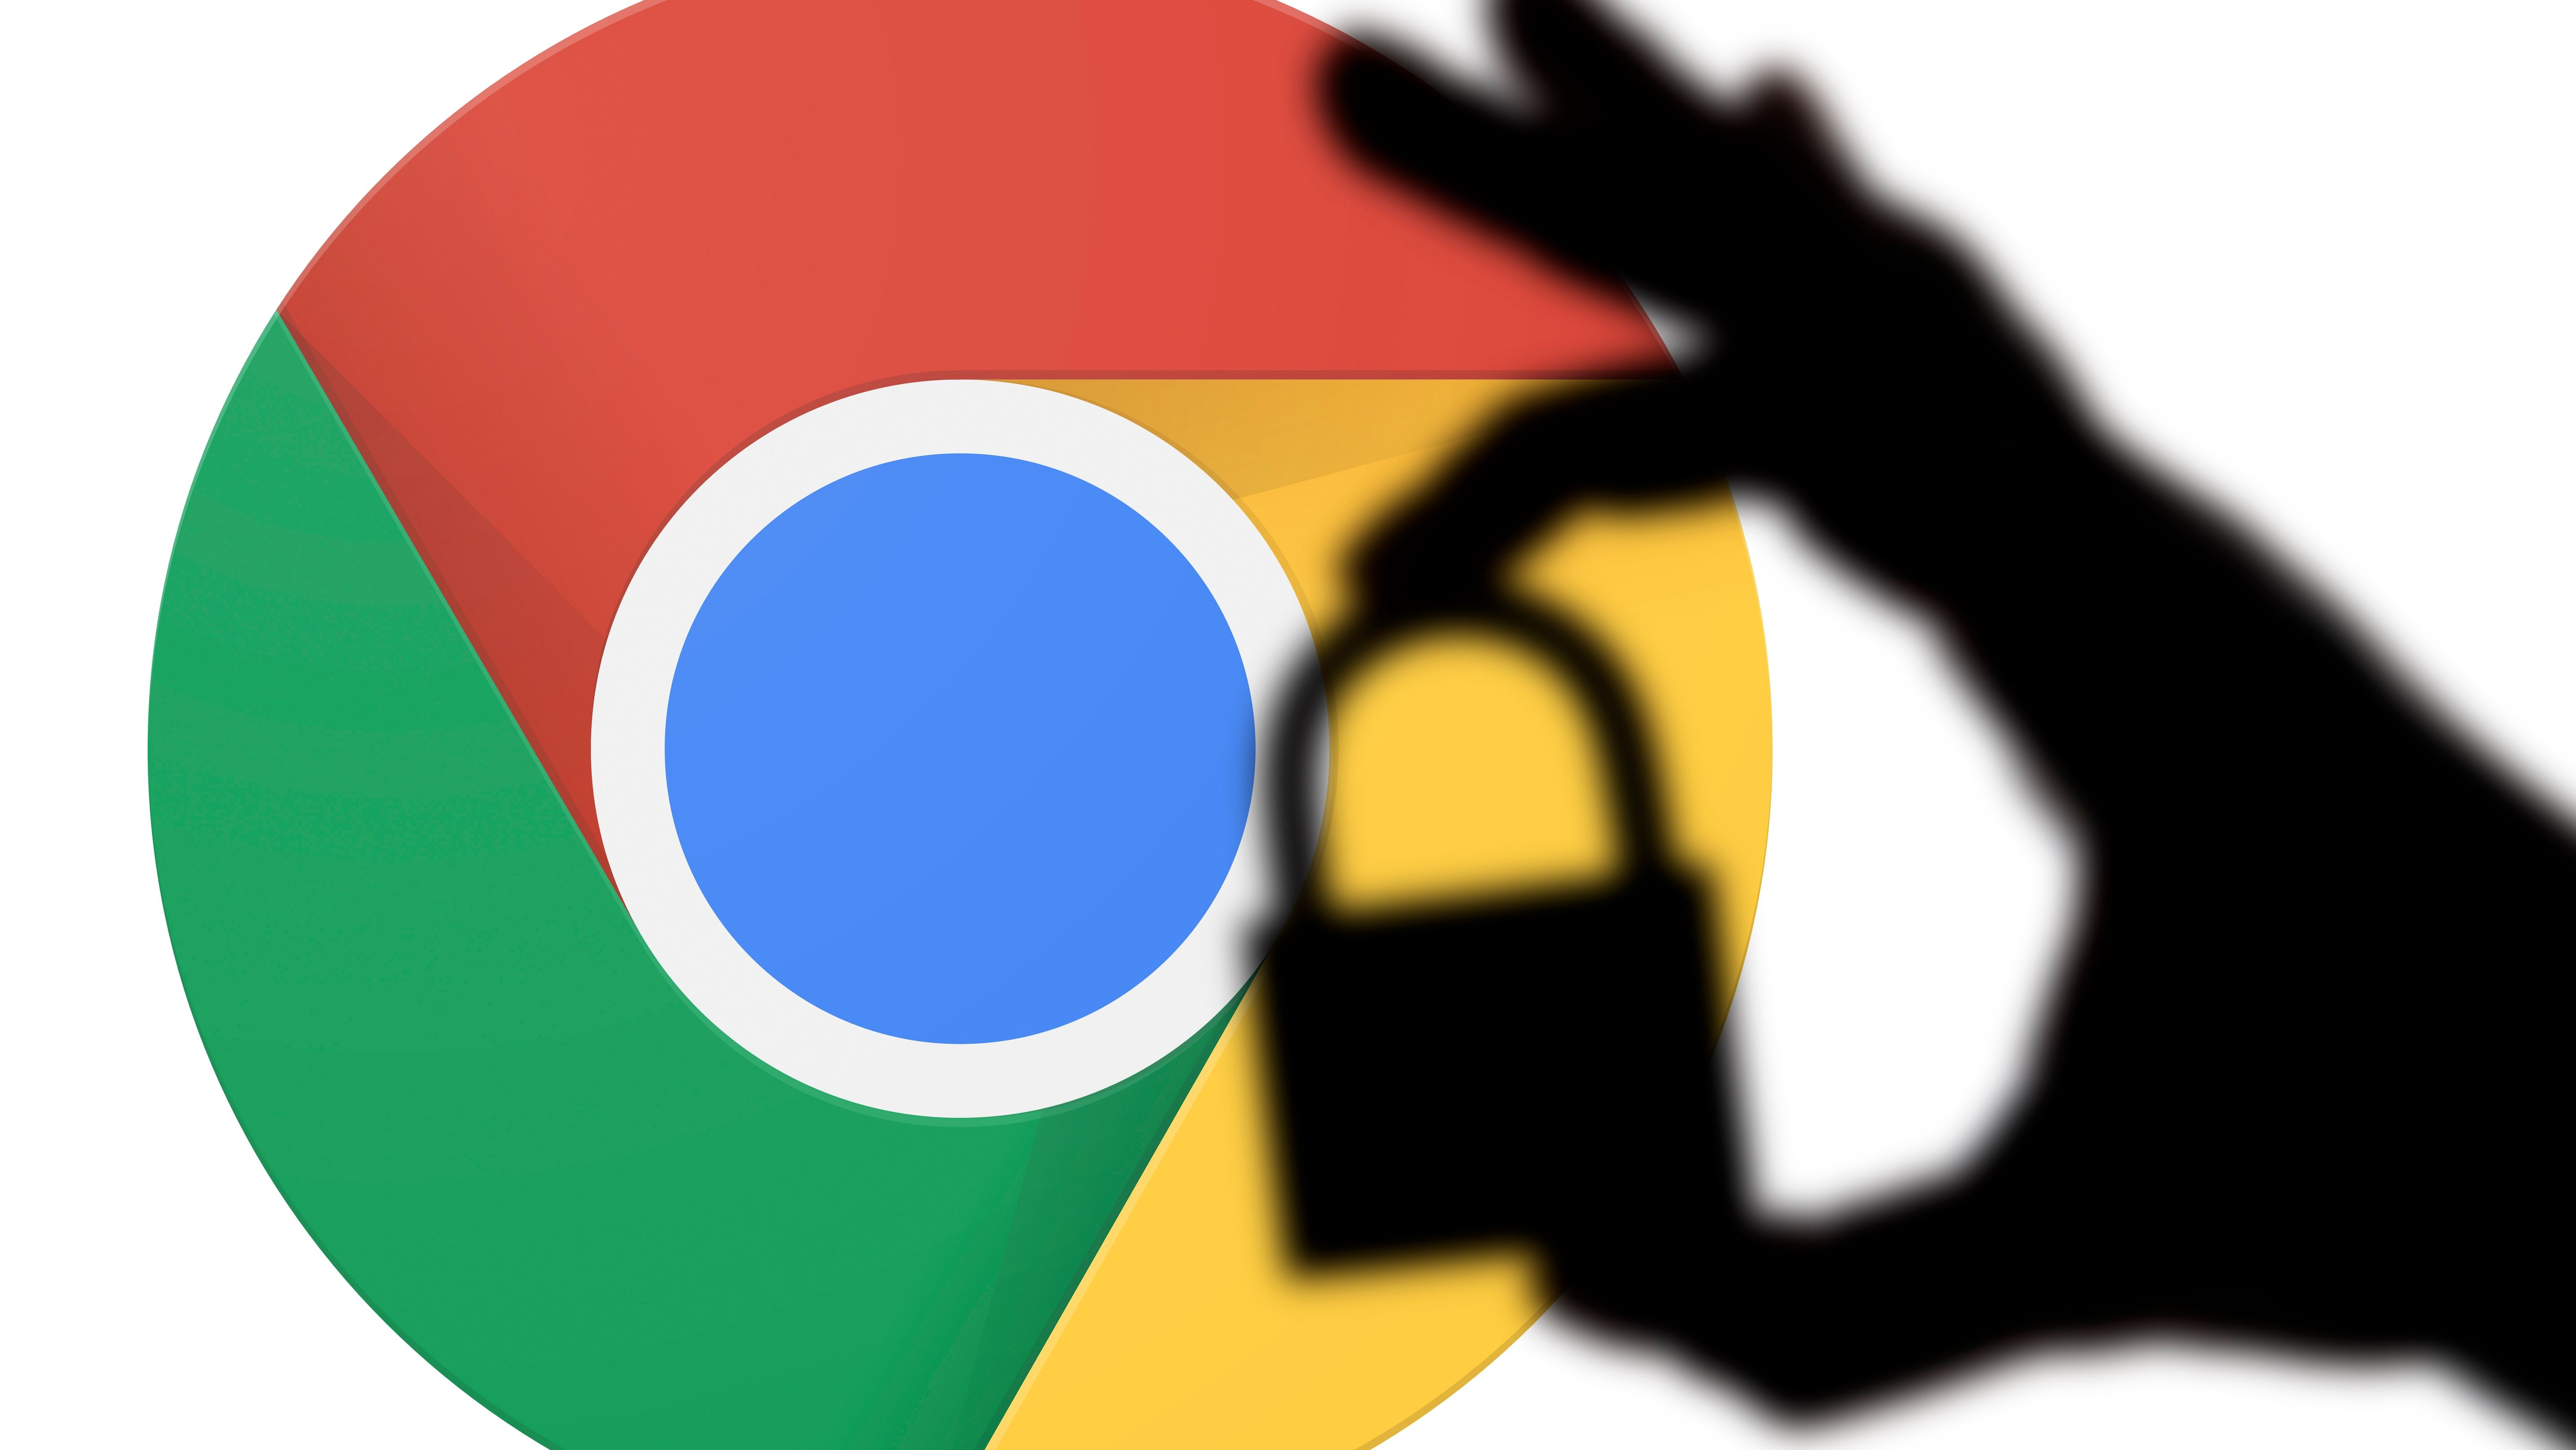 Chrome And Firefox Extensions Stealing Customer Data Security Patches Best Apple Watch Apps Apple Watch Apps